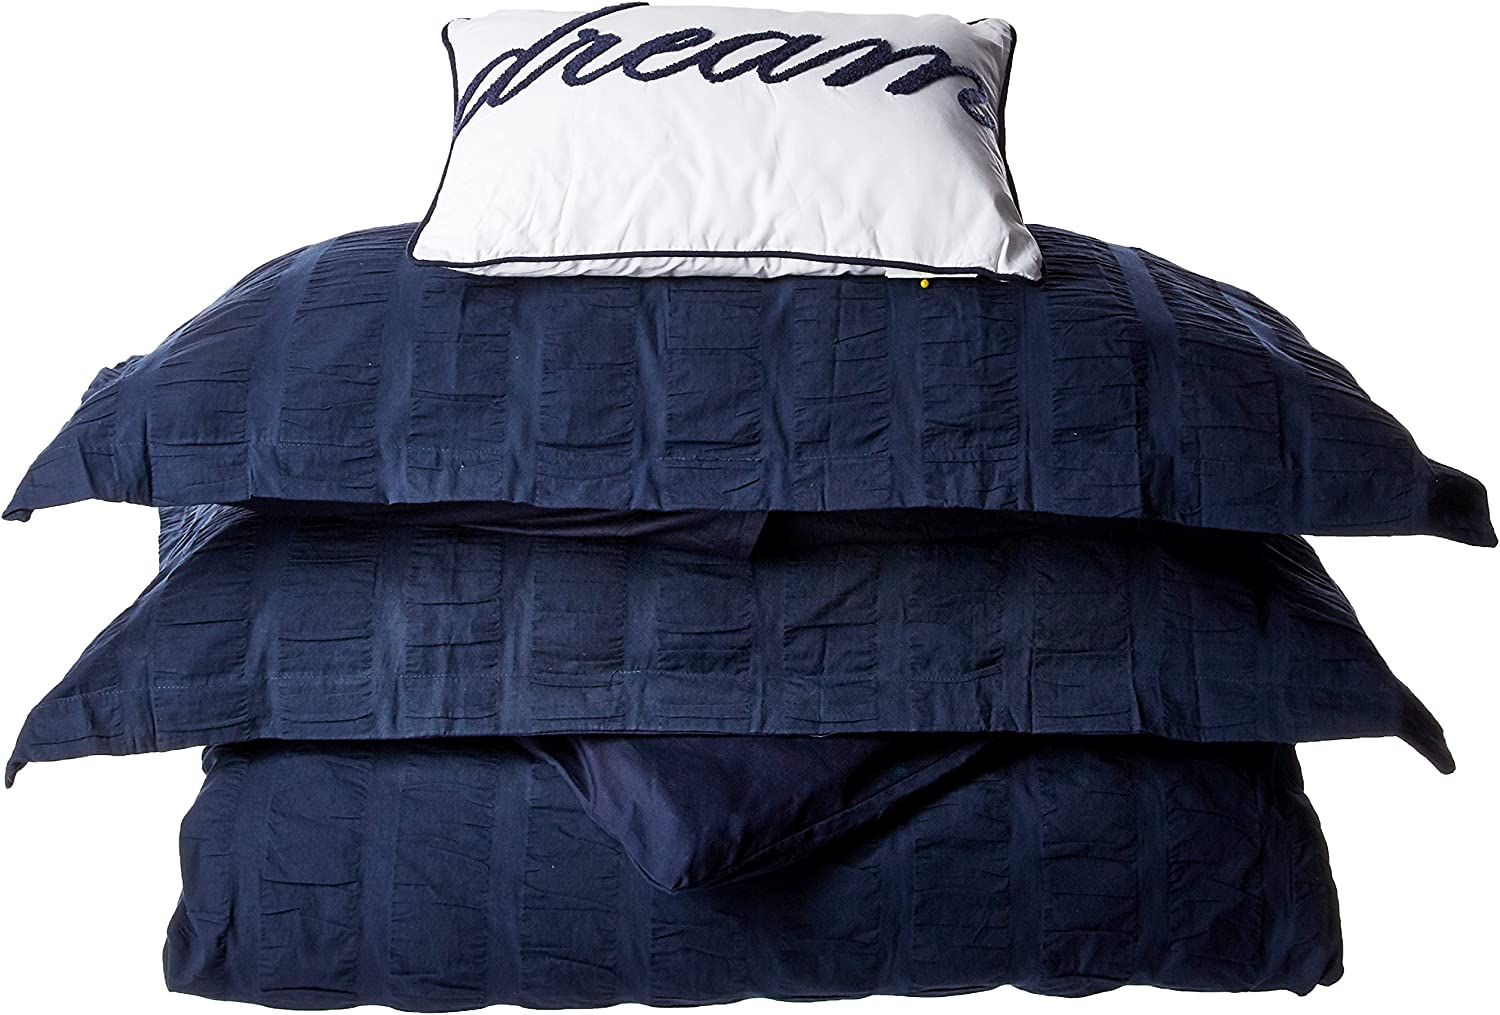 Chic Home 4 Piece Millbury 100% Cotton 200 Thread Count Organic Casual Ruffled and Pleated Textured Fabric King Duvet Cover Set Navy